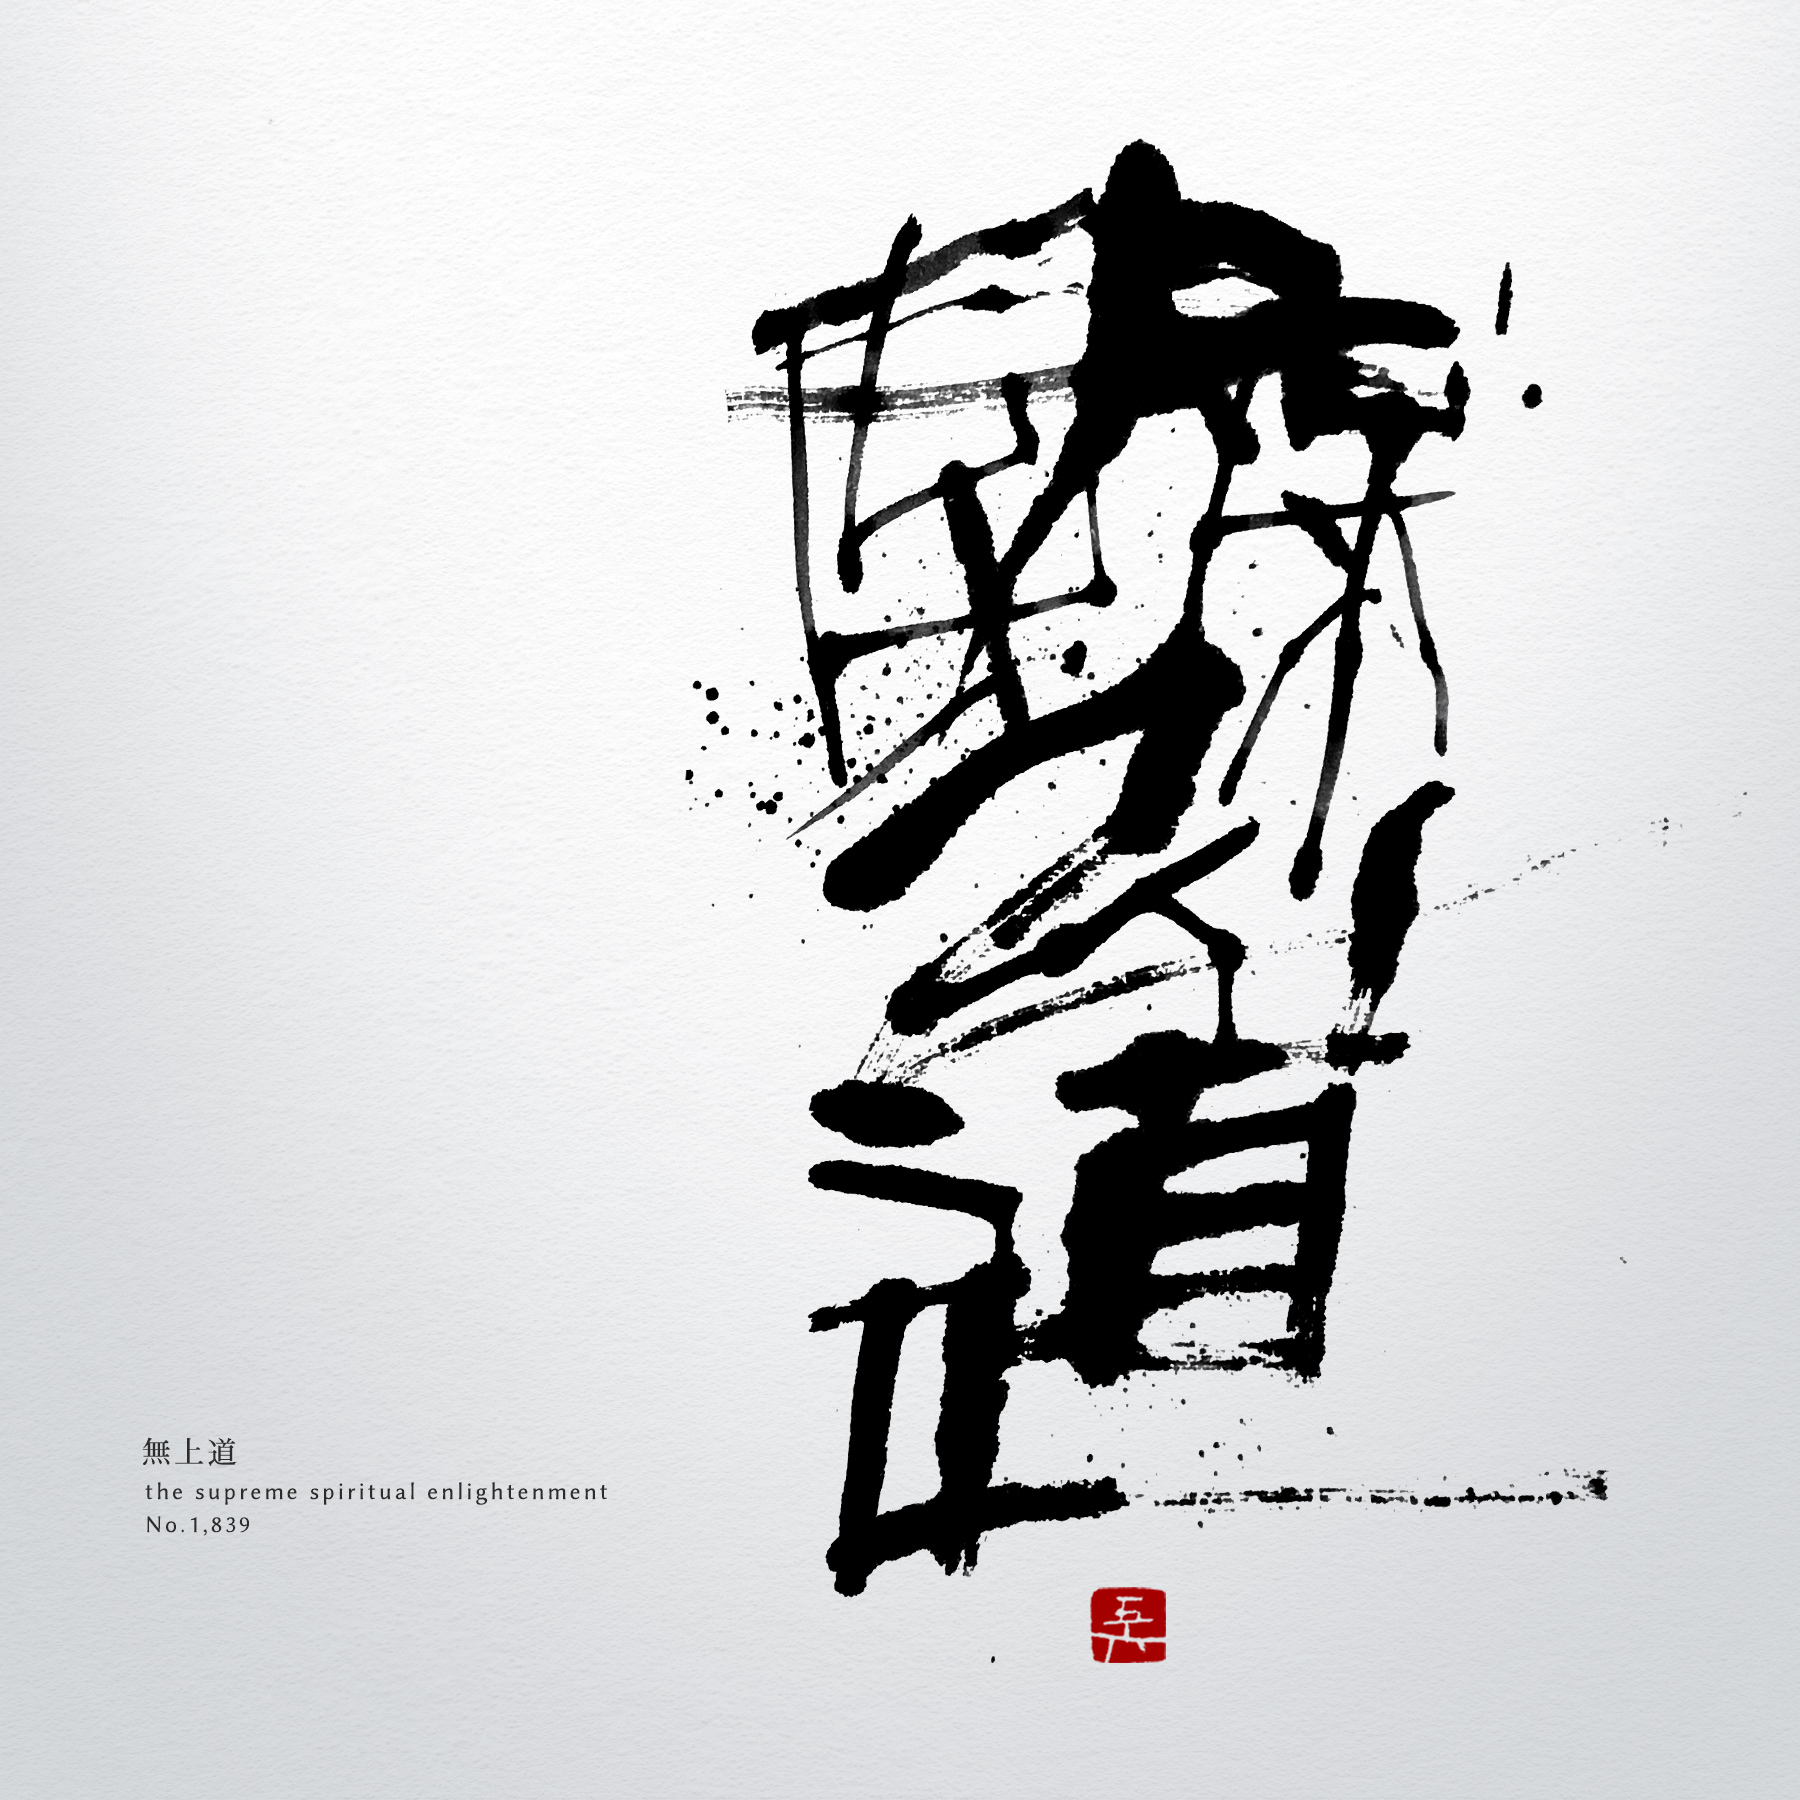 無上道 | the supreme spiritual enlightenment  書道作品 japaneseart japanese calligraphy 書家 田川悟郎 Goroh Tagawa